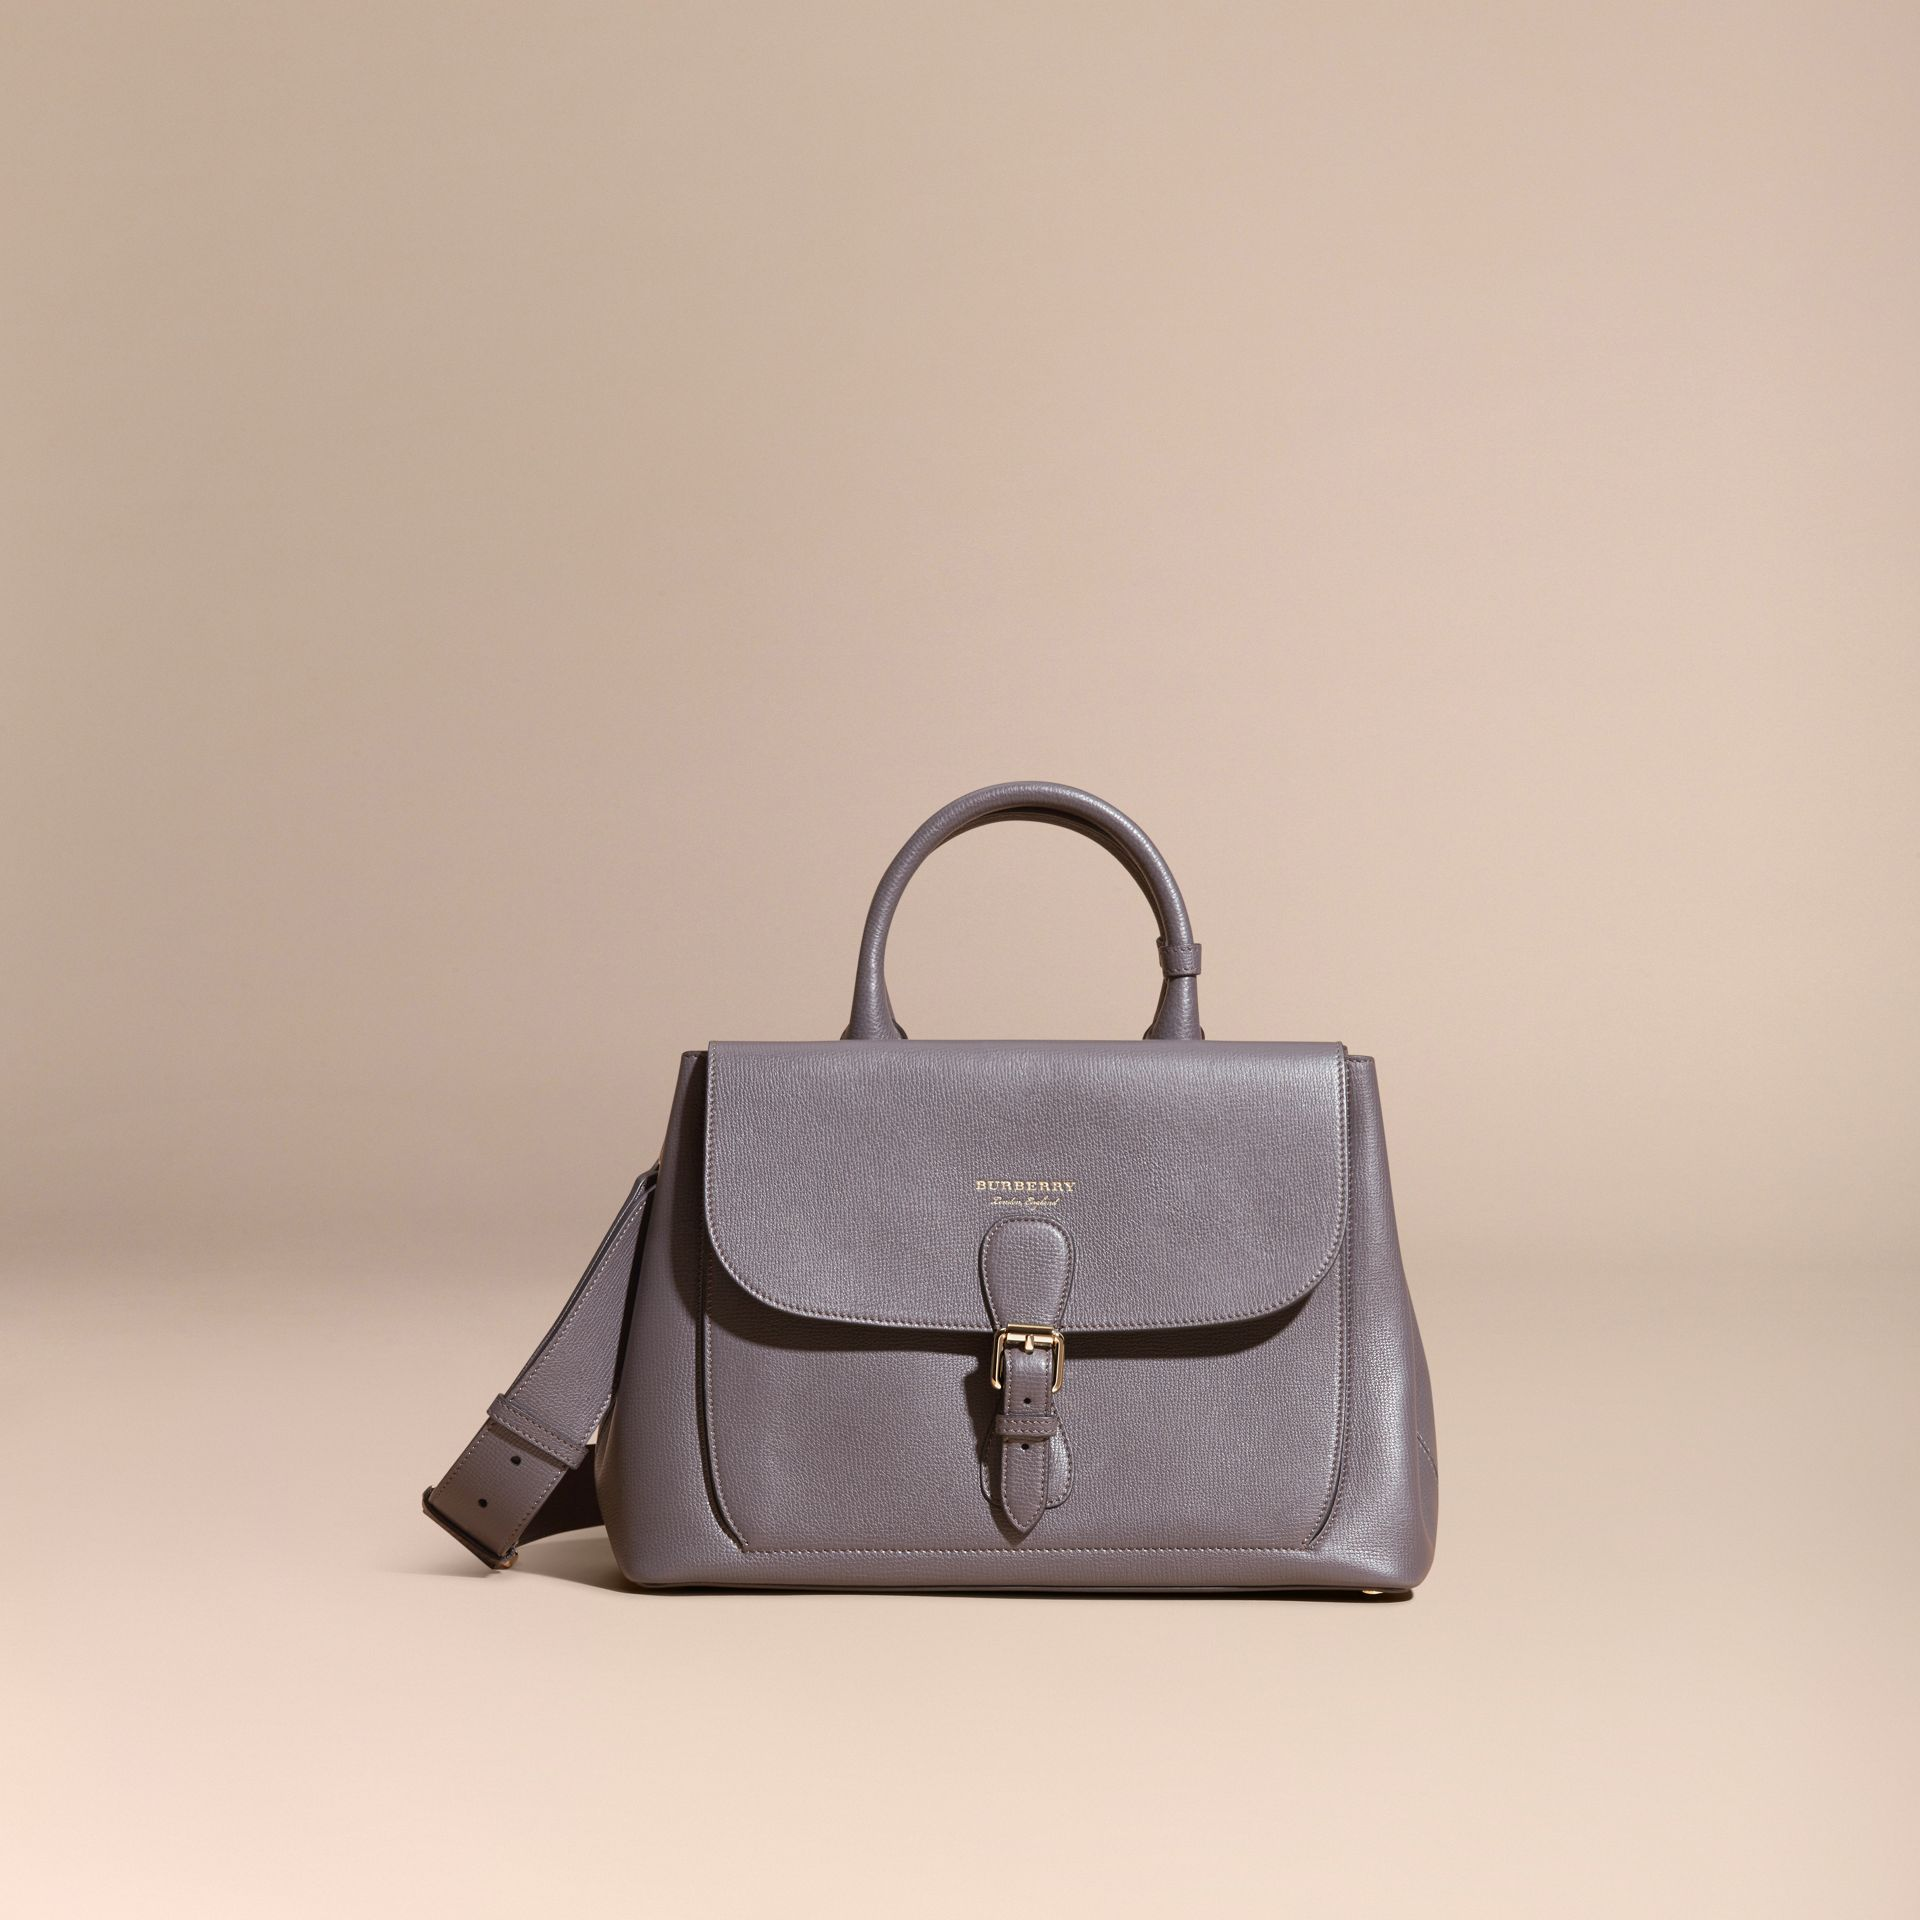 Sepia grey The Medium Saddle Bag in Grainy Bonded Leather Sepia Grey - gallery image 8